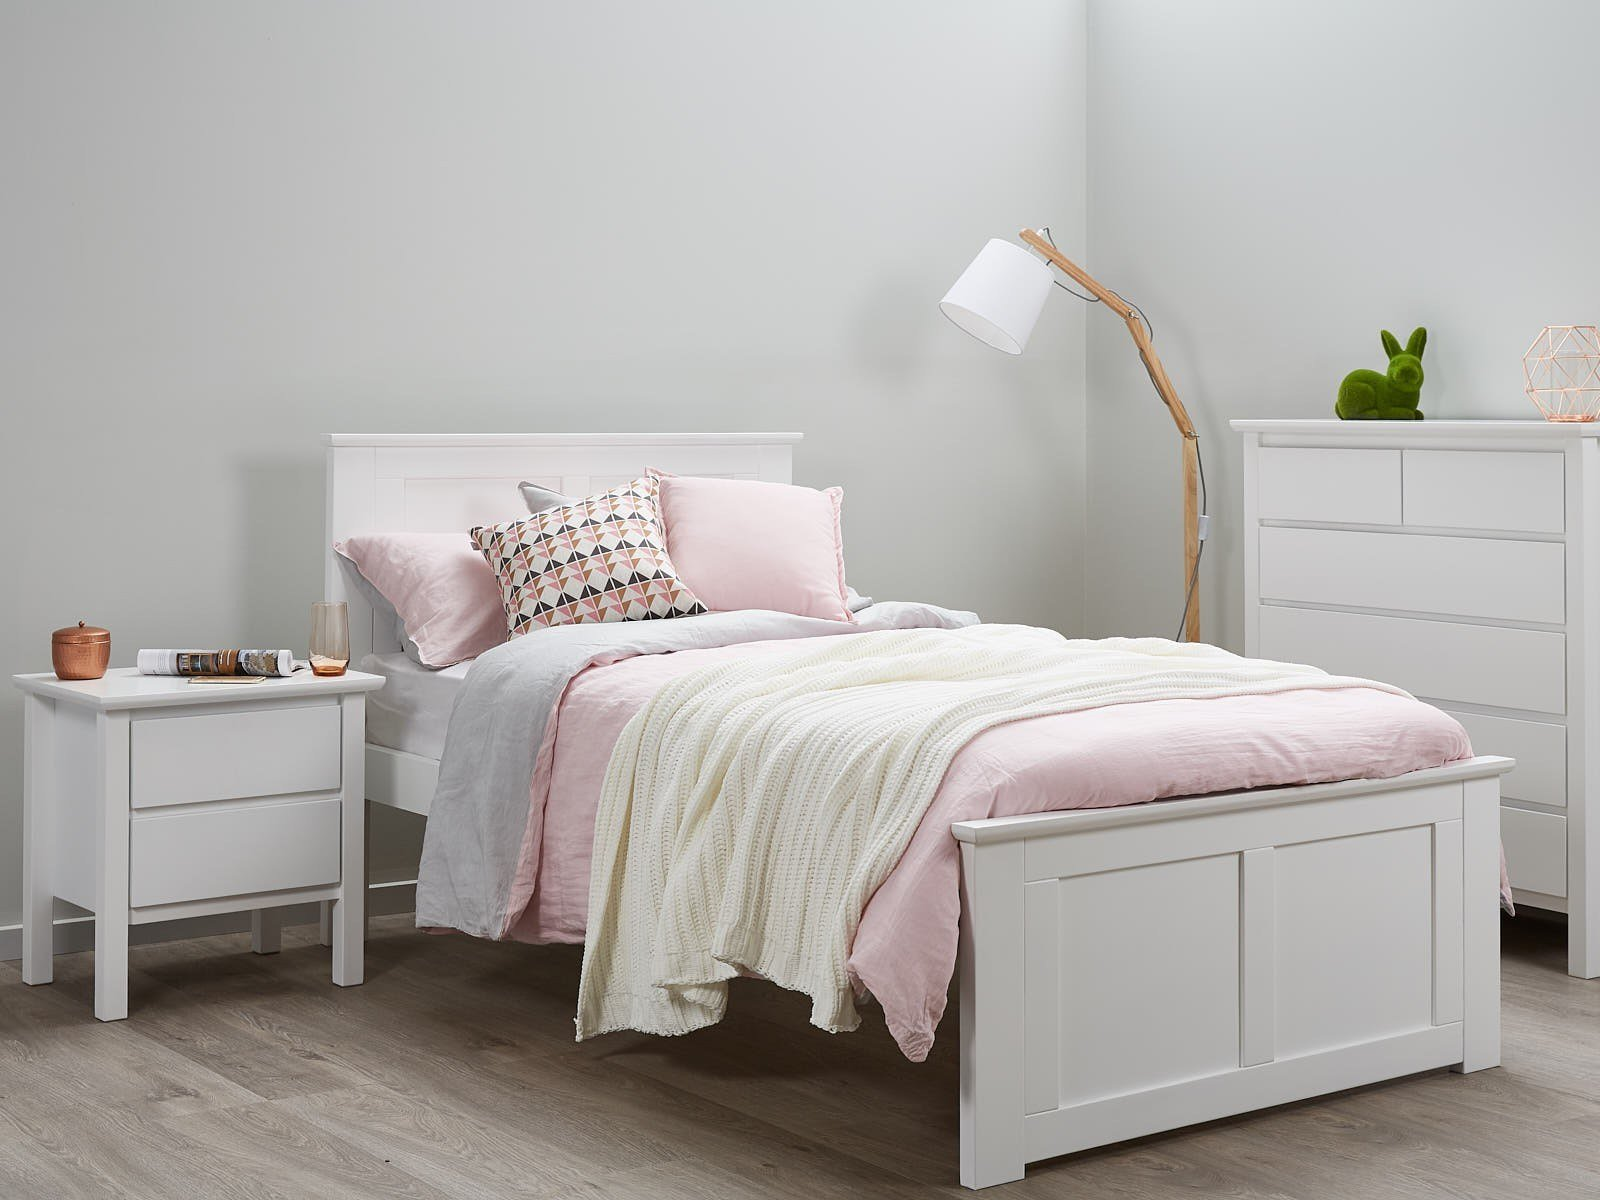 Best White King Single Bedroom Suites 50 75 Off Sale With Pictures